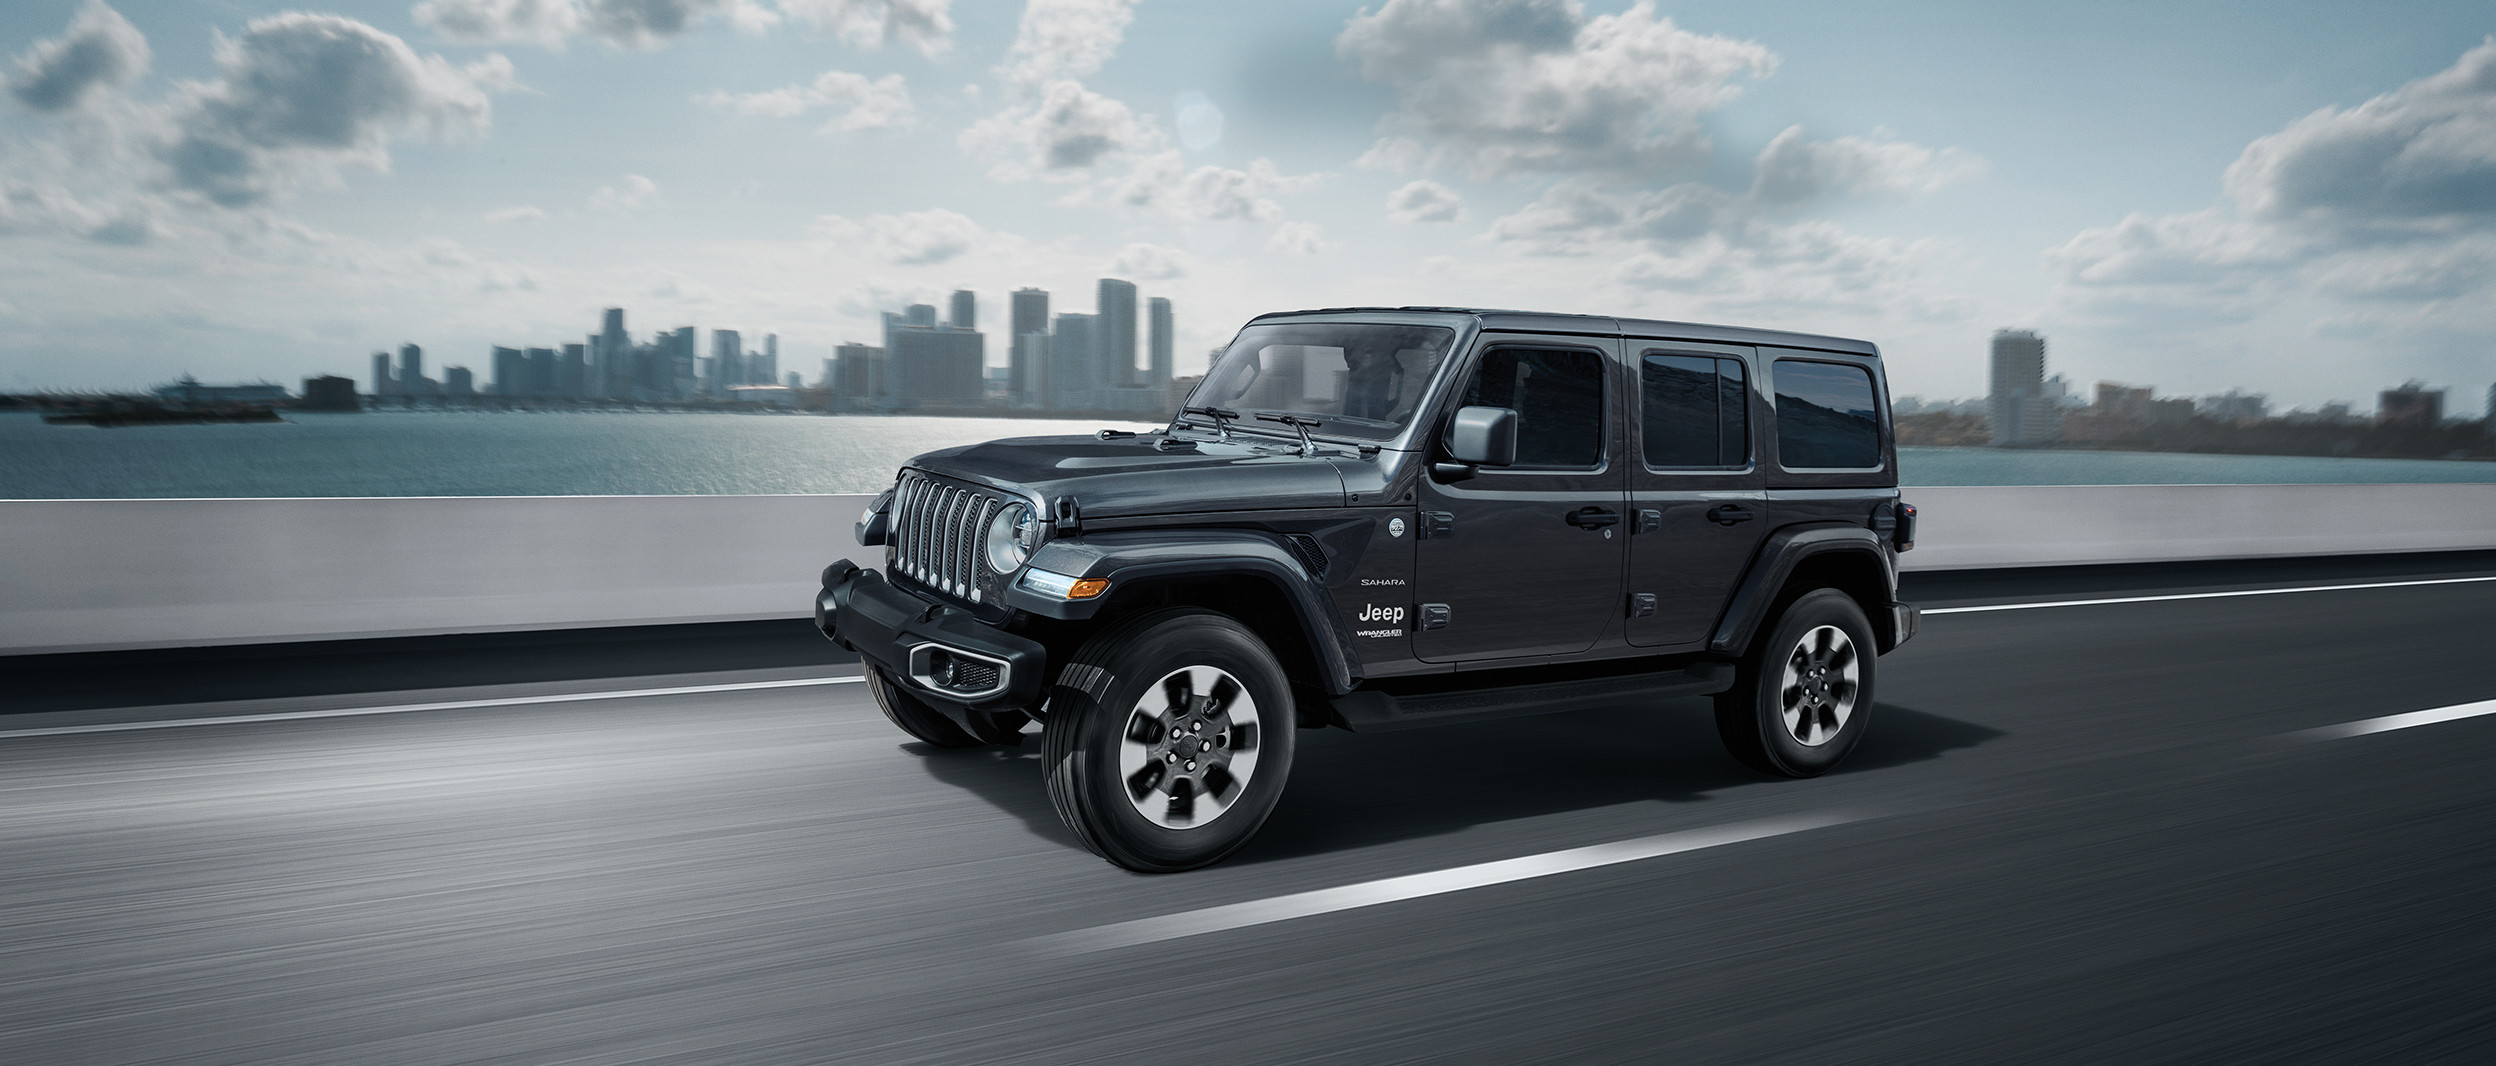 2019 Jeep Wrangler on highway, shown in dark grey